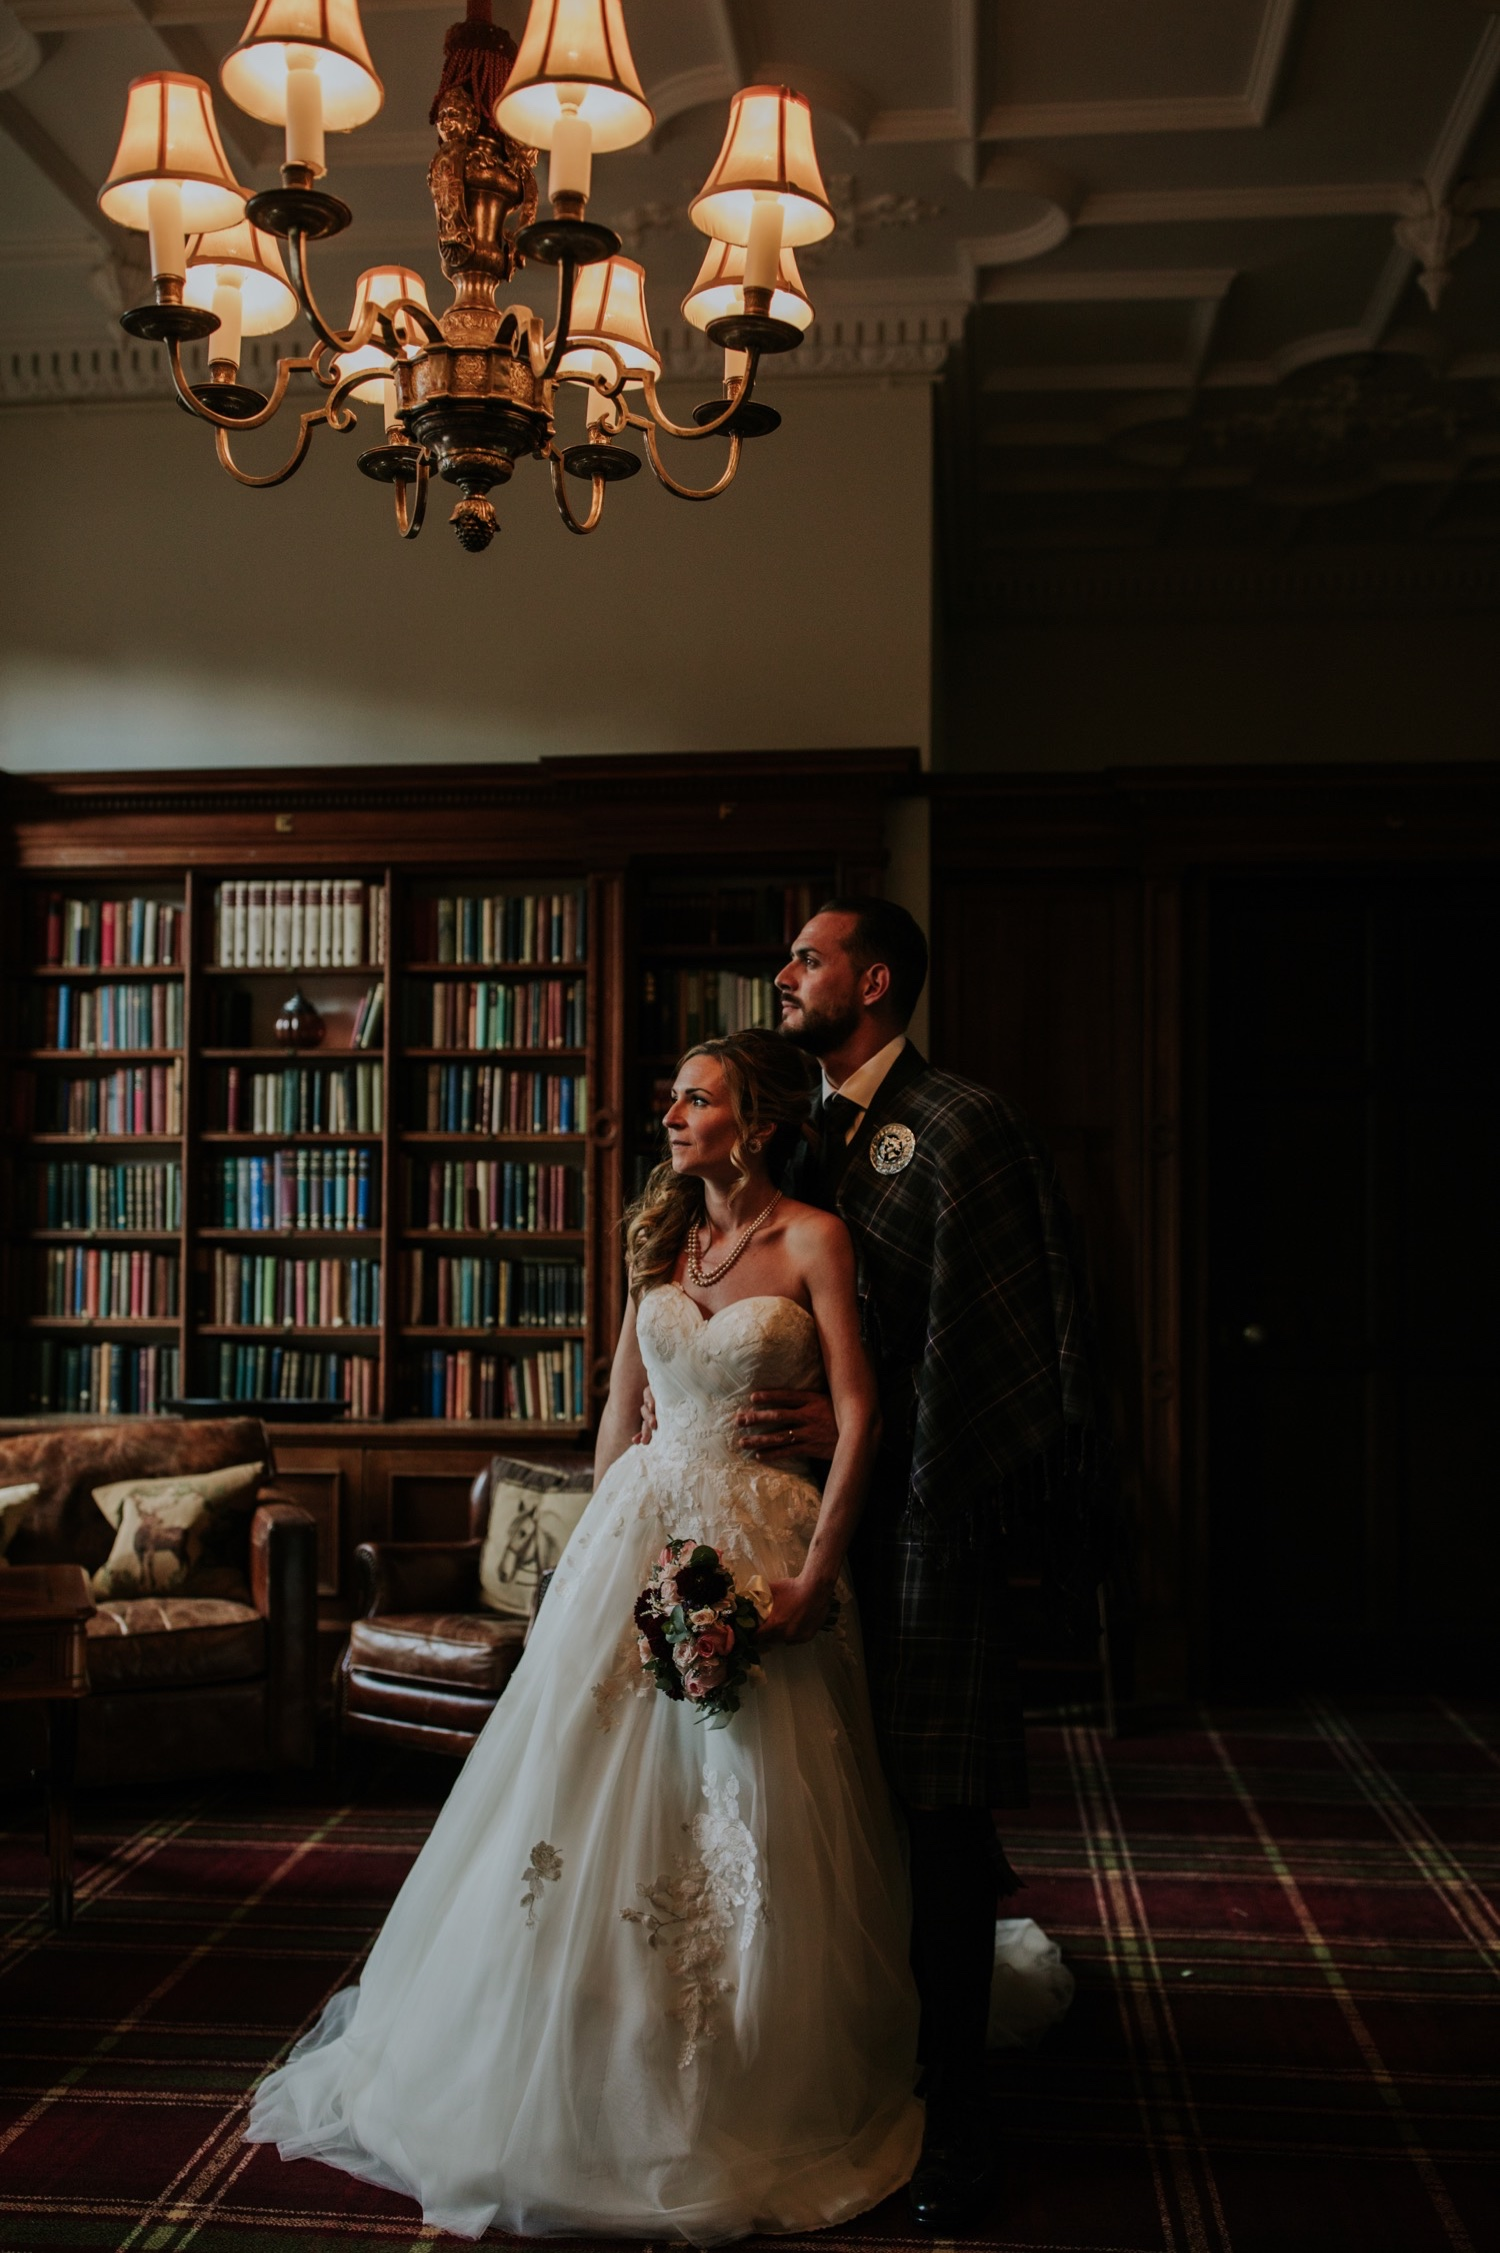 french wedding at carberry tower edinburgh